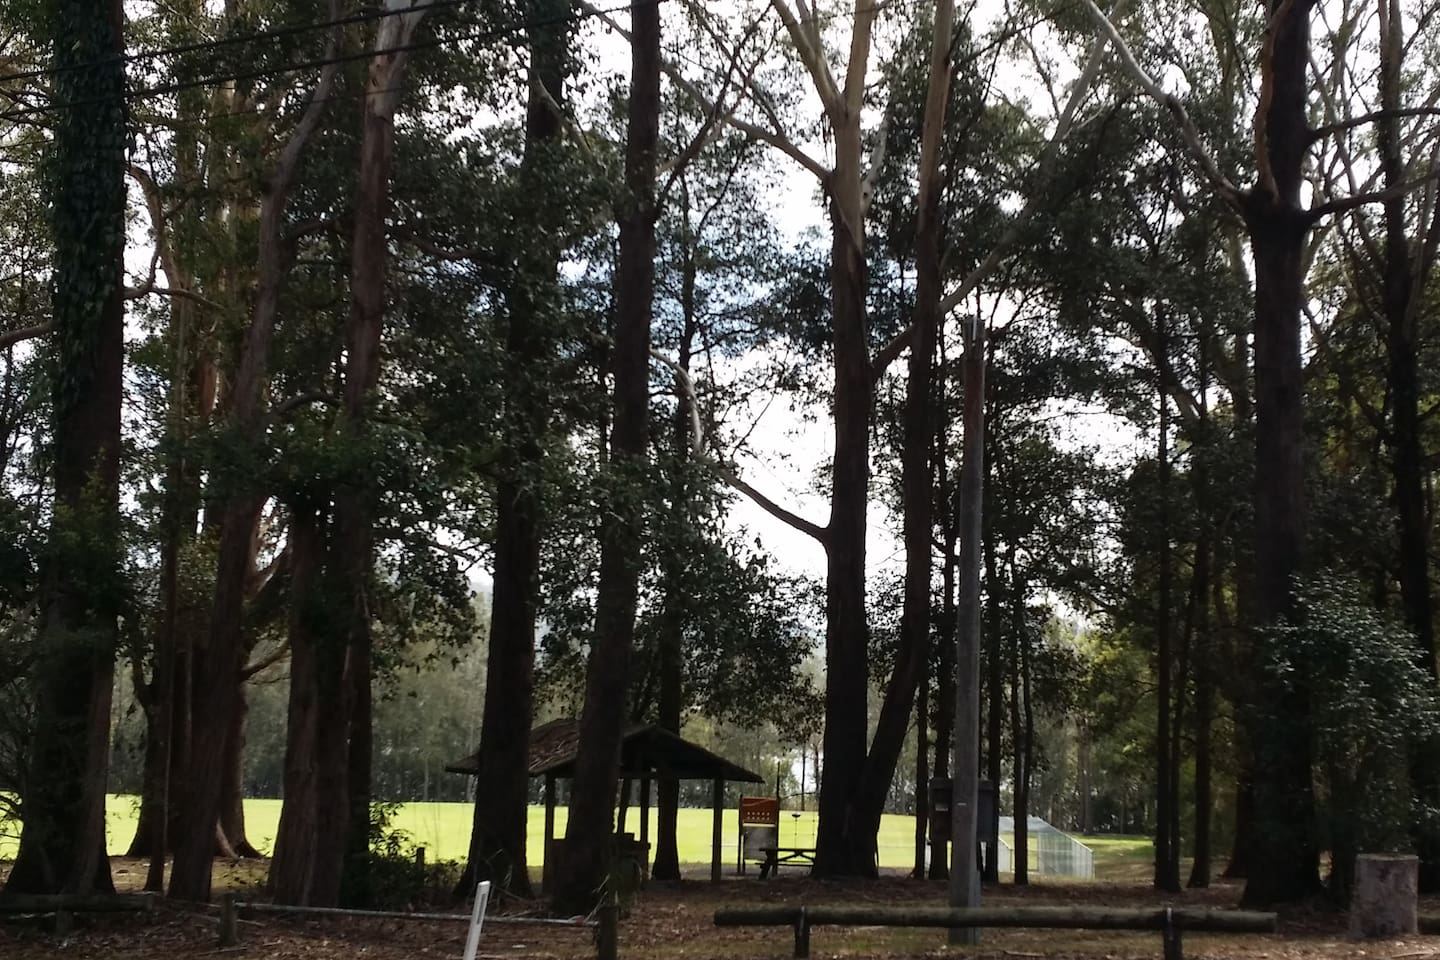 Fagan Park- Beautiful park, walk and water way across from guest house